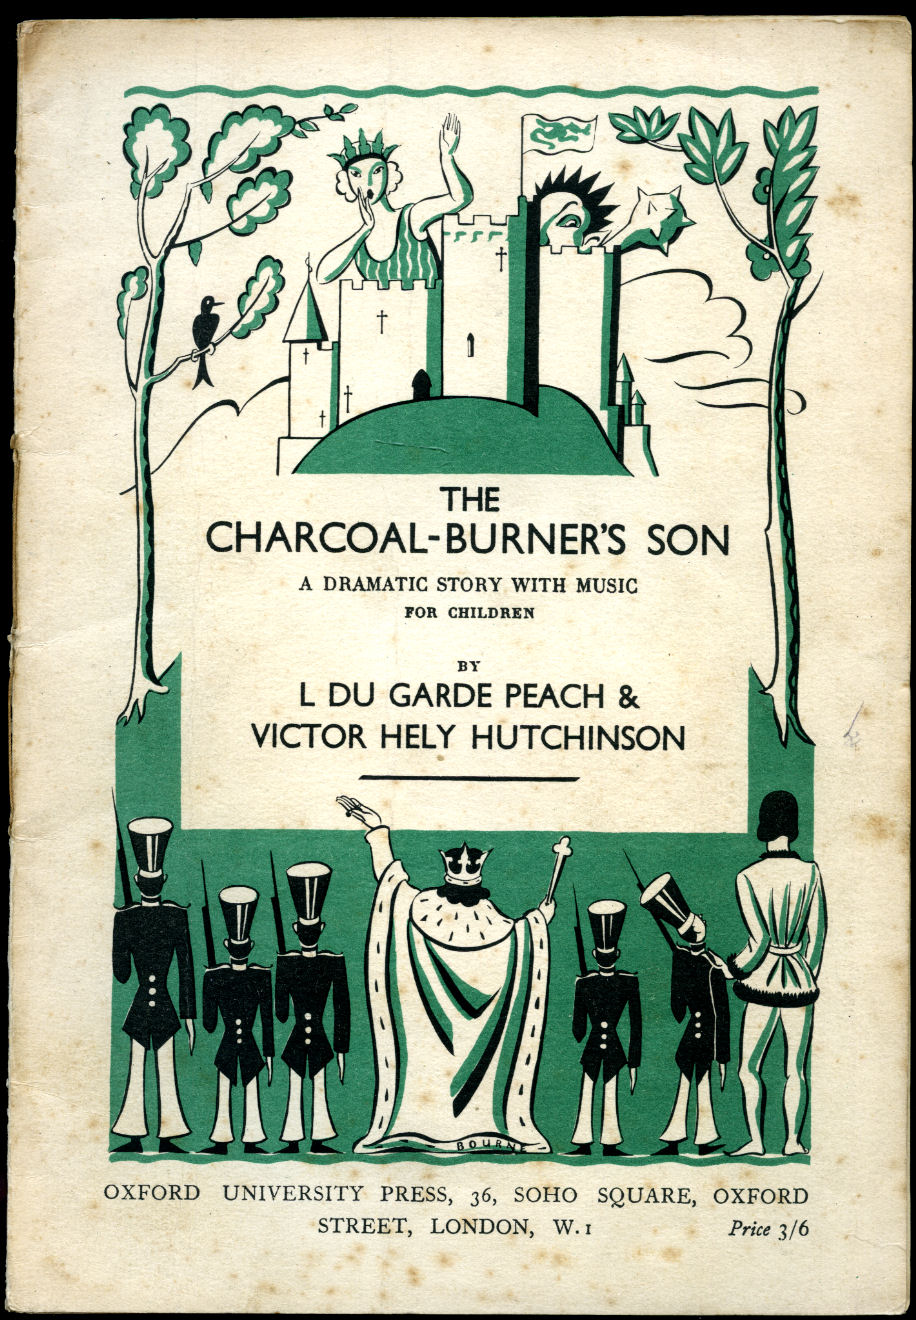 PEACH, L. DU GARDE AND VICTOR HELY HUTCHINSON - The Charcoal Burner's Son | A Dramatic Story for Children with Music and a Dragon [Vintage Piano Solo Sheet Music]